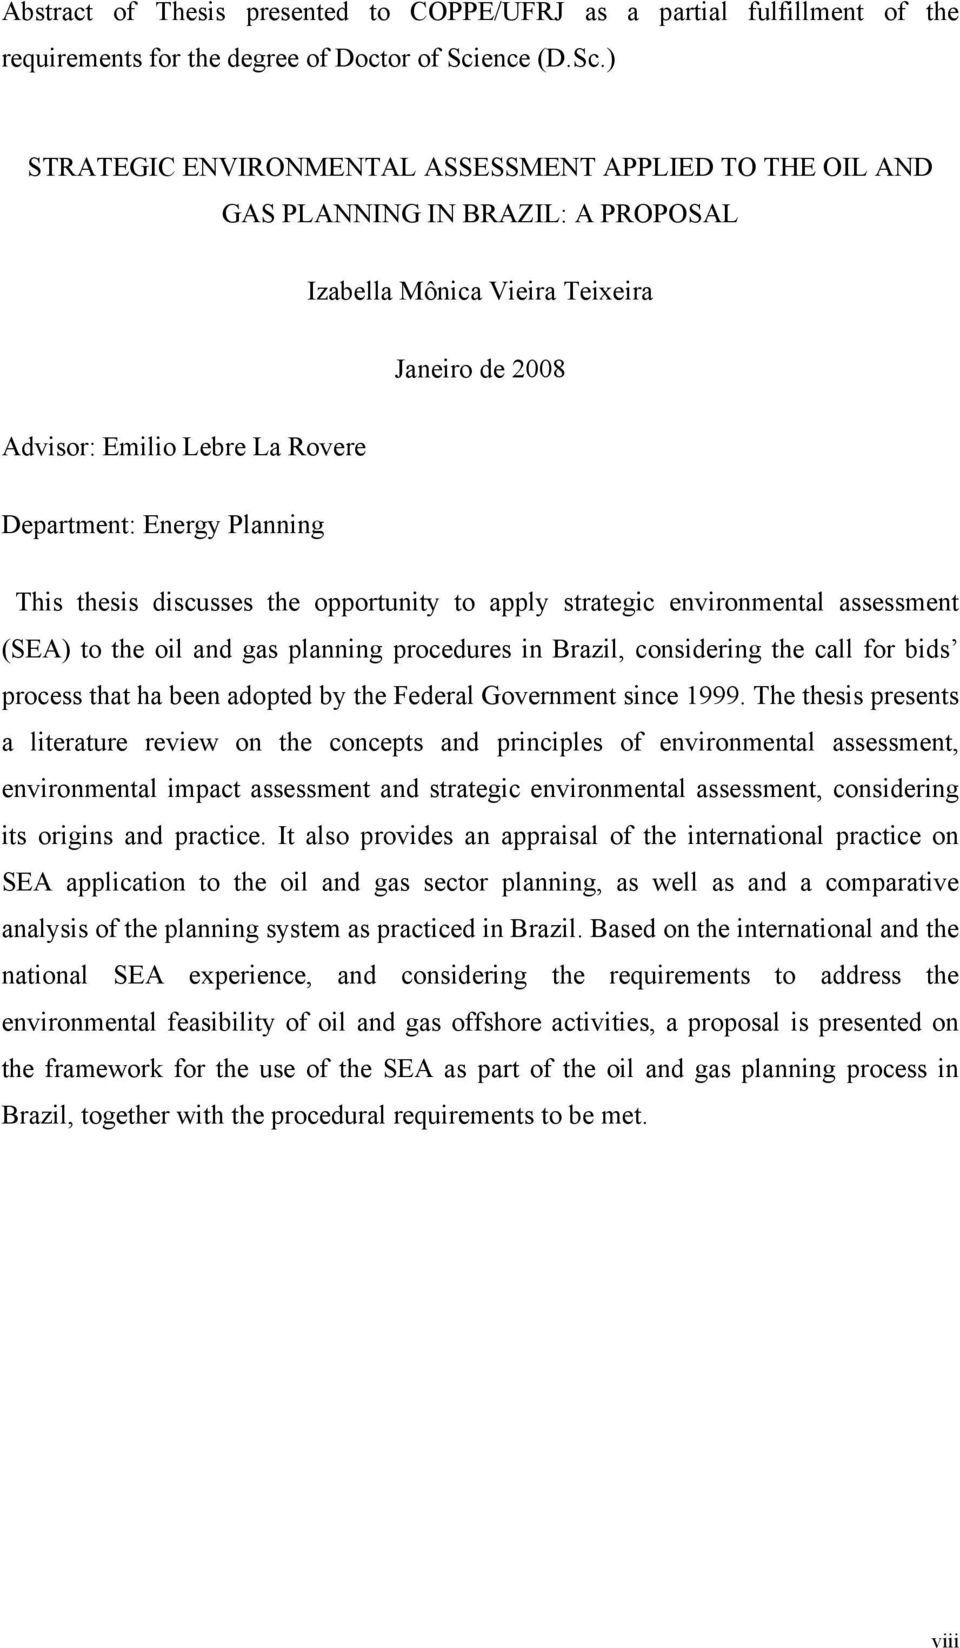 ) STRATEGIC ENVIRONMENTAL ASSESSMENT APPLIED TO THE OIL AND GAS PLANNING IN BRAZIL: A PROPOSAL Izabella Mônica Vieira Teixeira Janeiro de 2008 Advisor: Emilio Lebre La Rovere Department: Energy